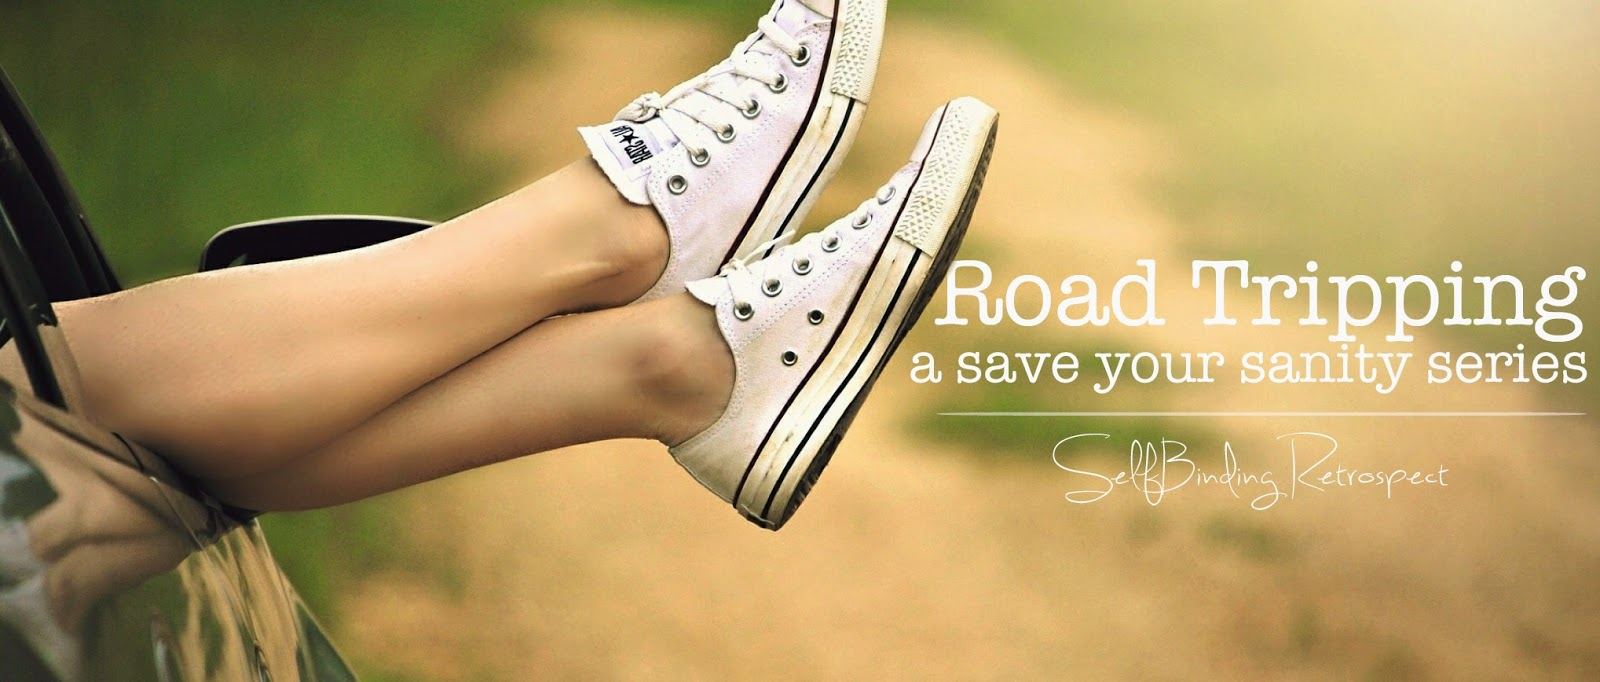 Road Tripping - a save your sanity series by Alanna Rusnak - SelfBinding Retrospect